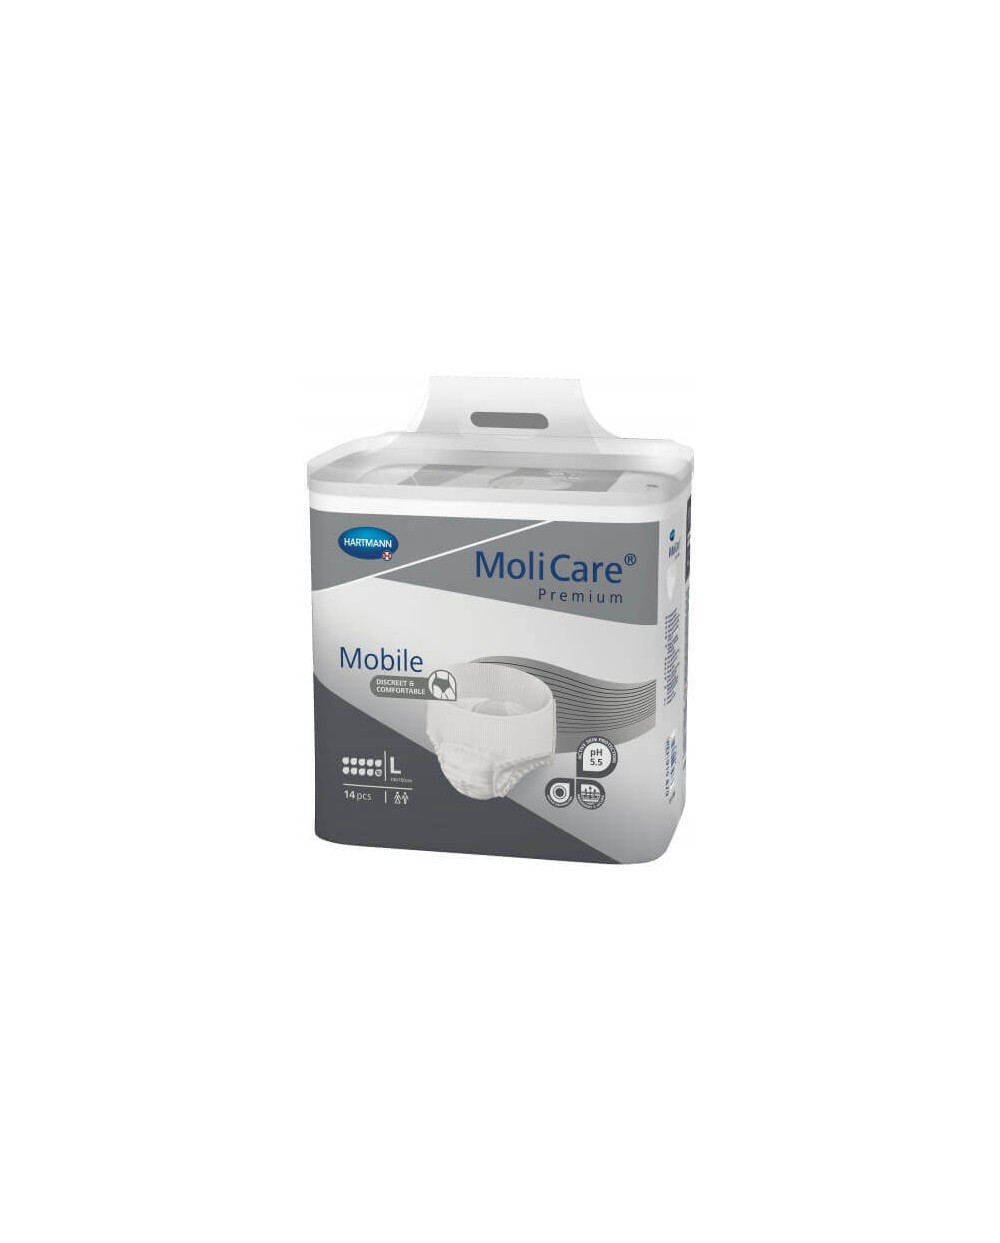 Hartmann Molicare Mobile 10 Gouttes - LARGE - 14 protections